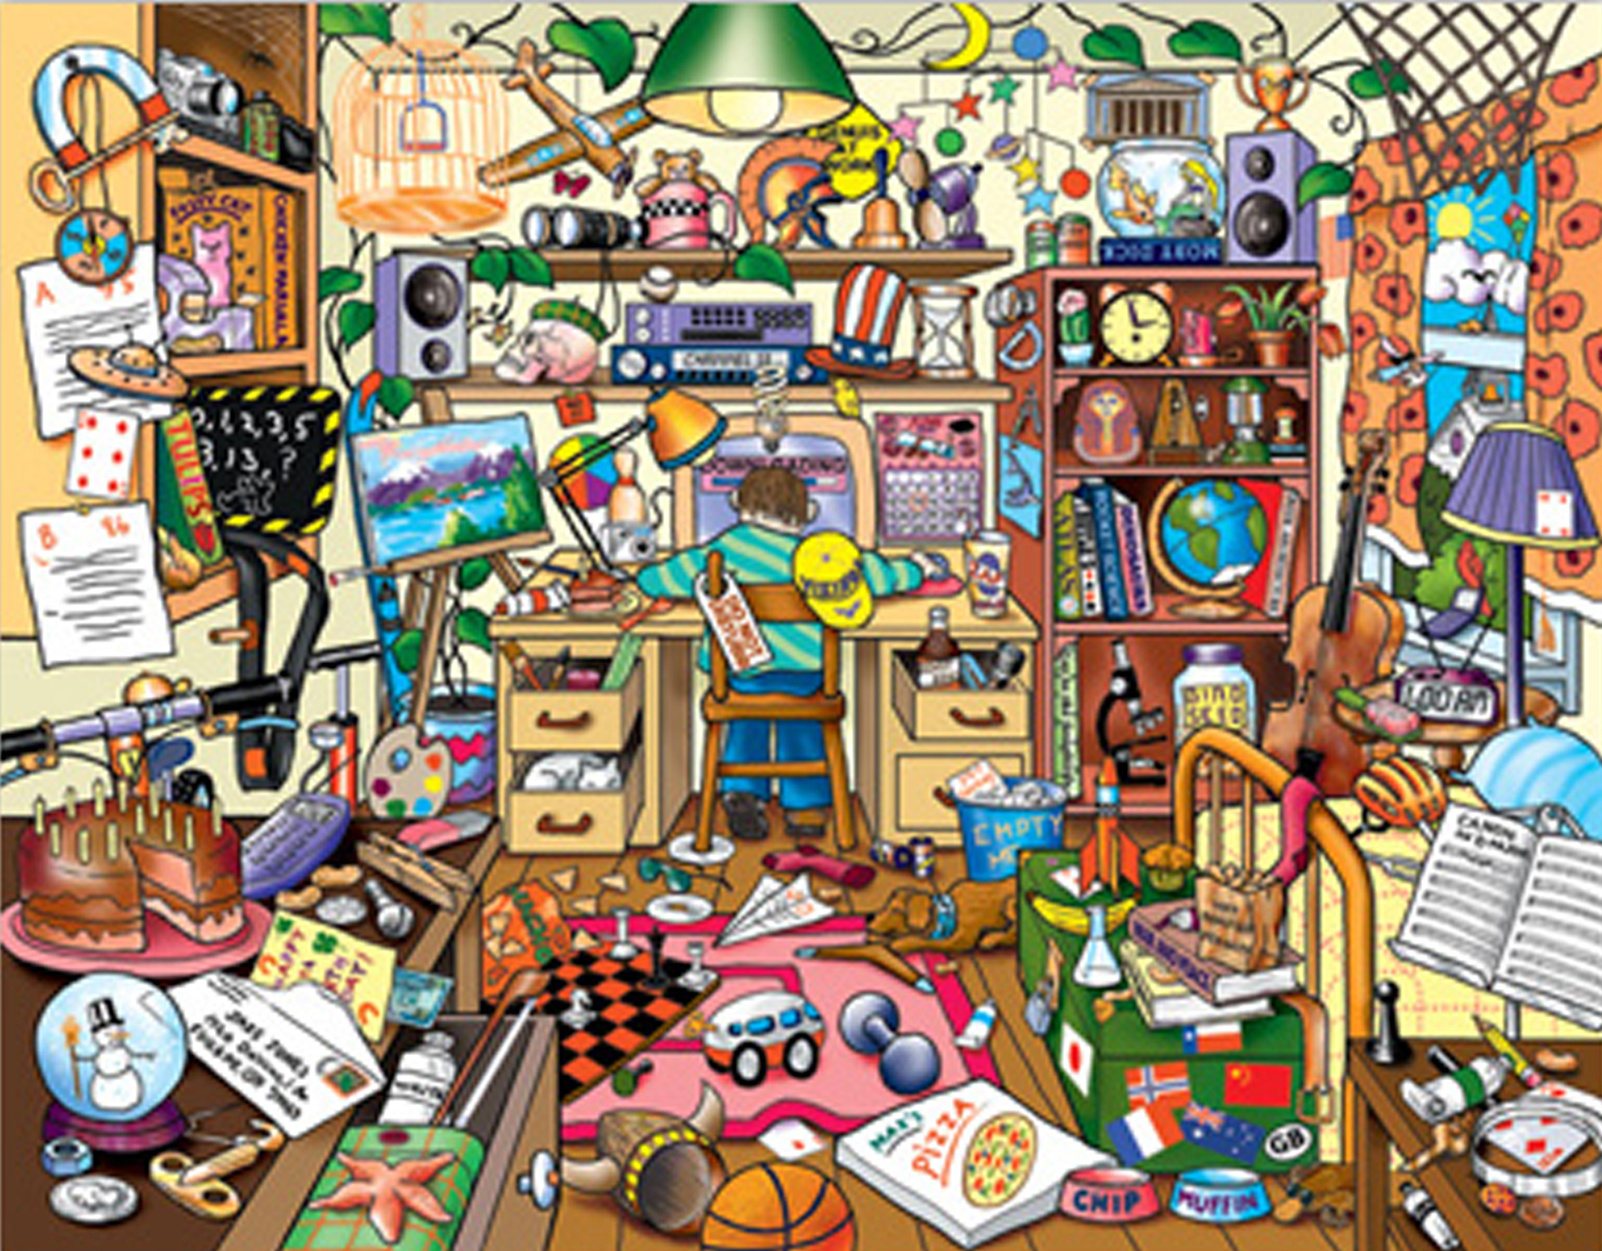 messy house clipart - photo #10